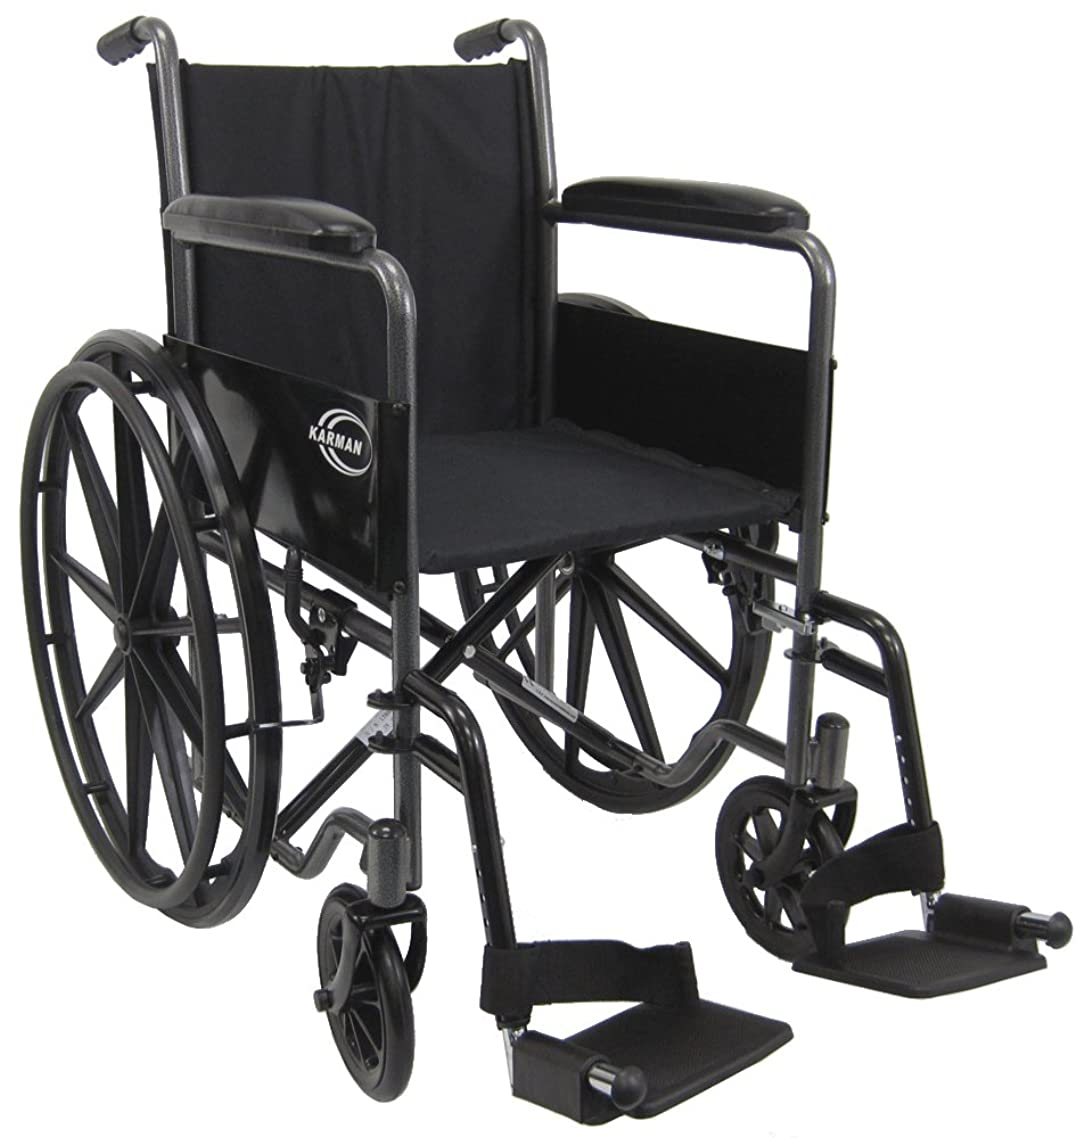 Karman Lightweight Wheelchair with Removable footrest, 18 inches